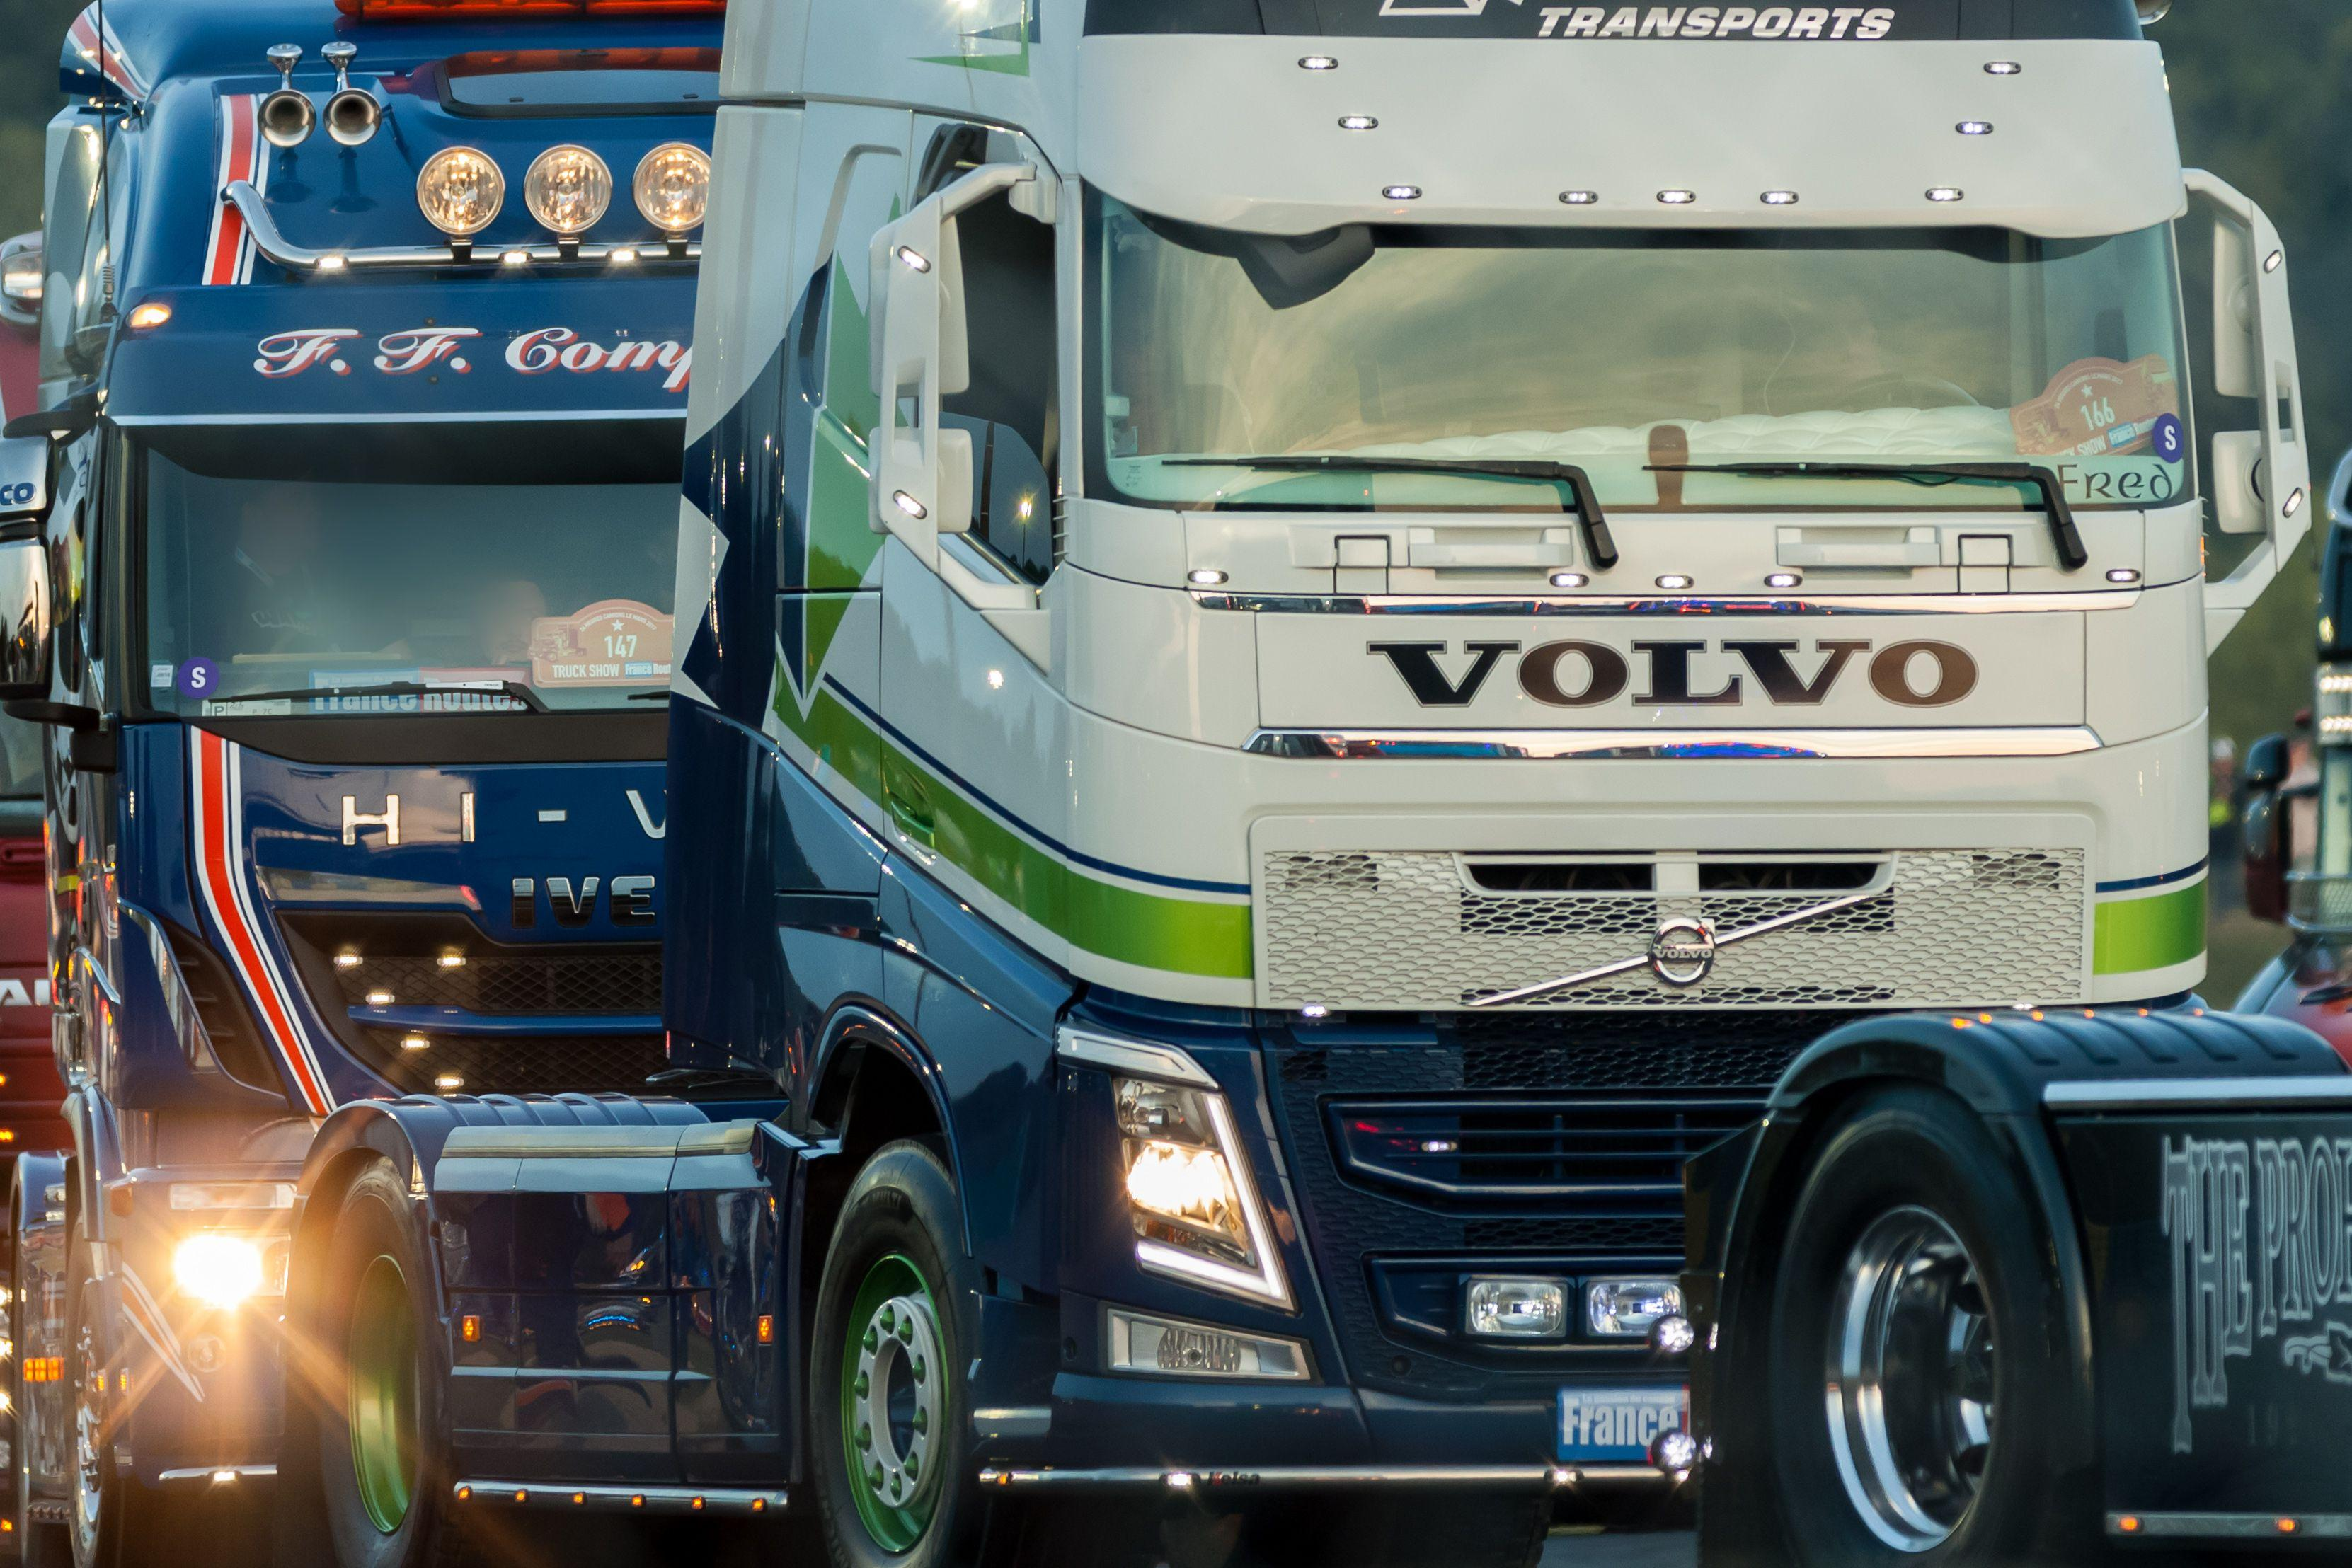 Volvo Wallpapers - Free High Resolution Trucks Backgrounds Download